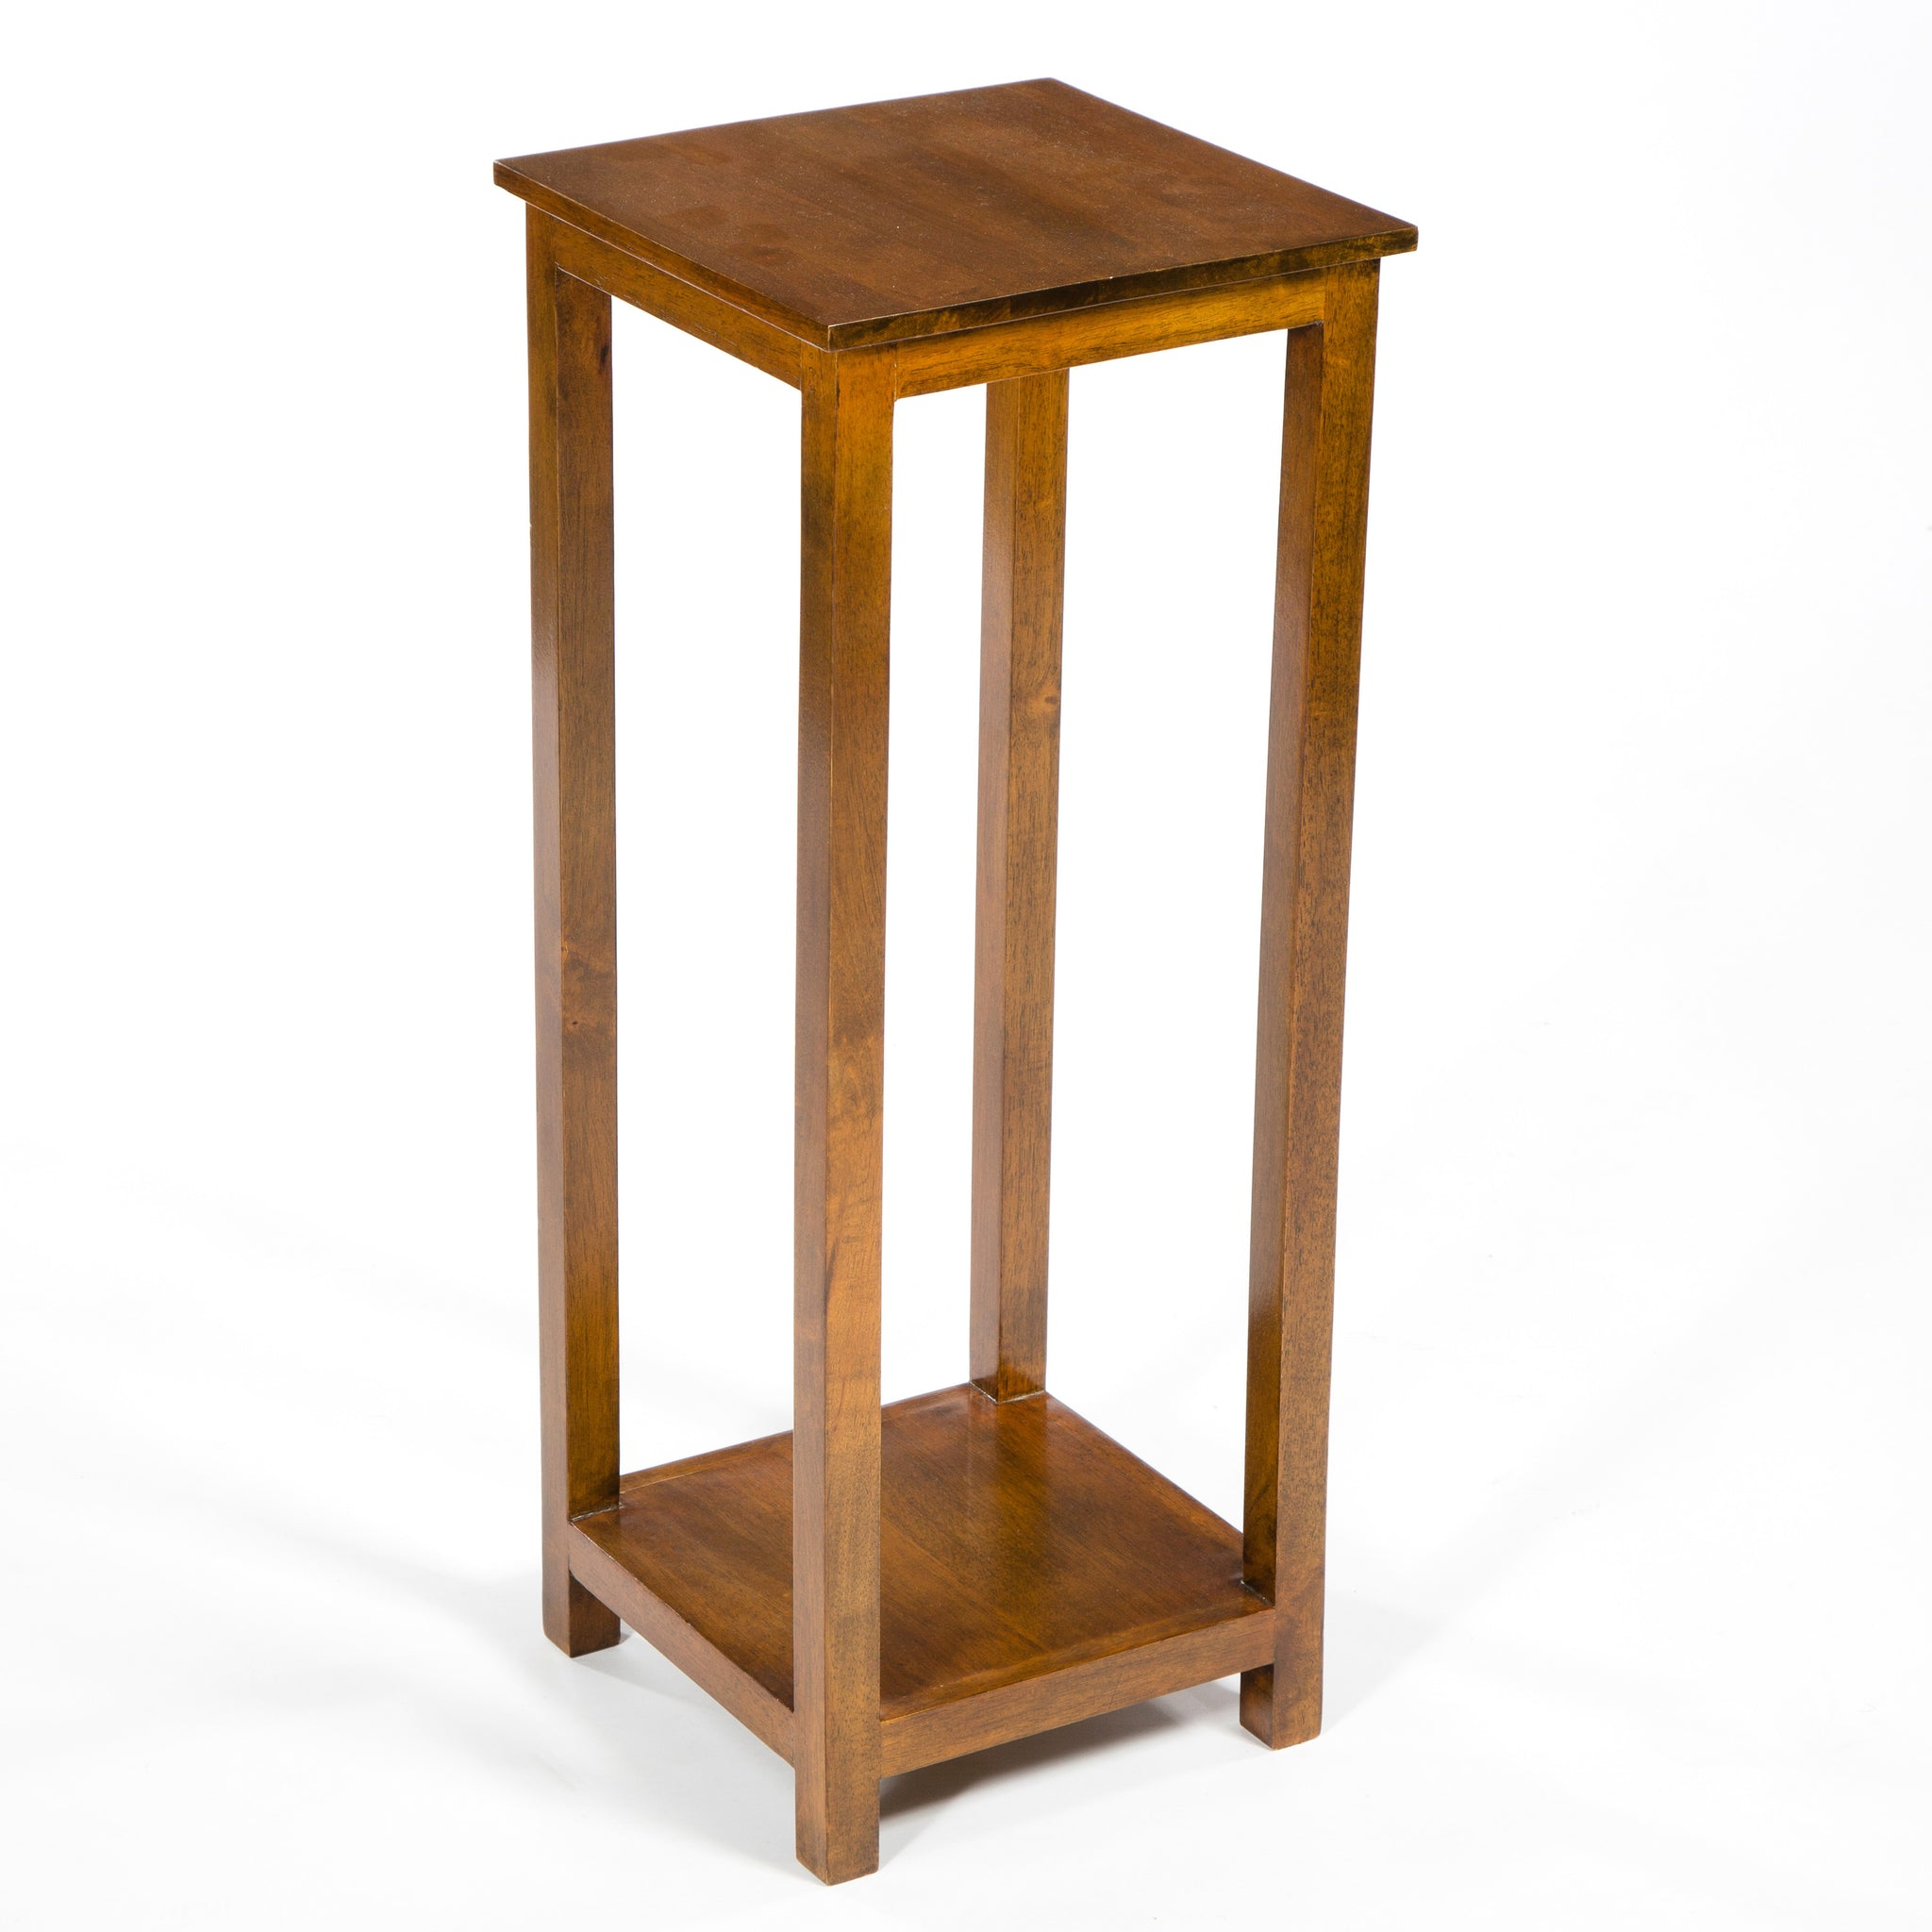 pdp table reviews telephone cottage inverness pedestal brambly furniture